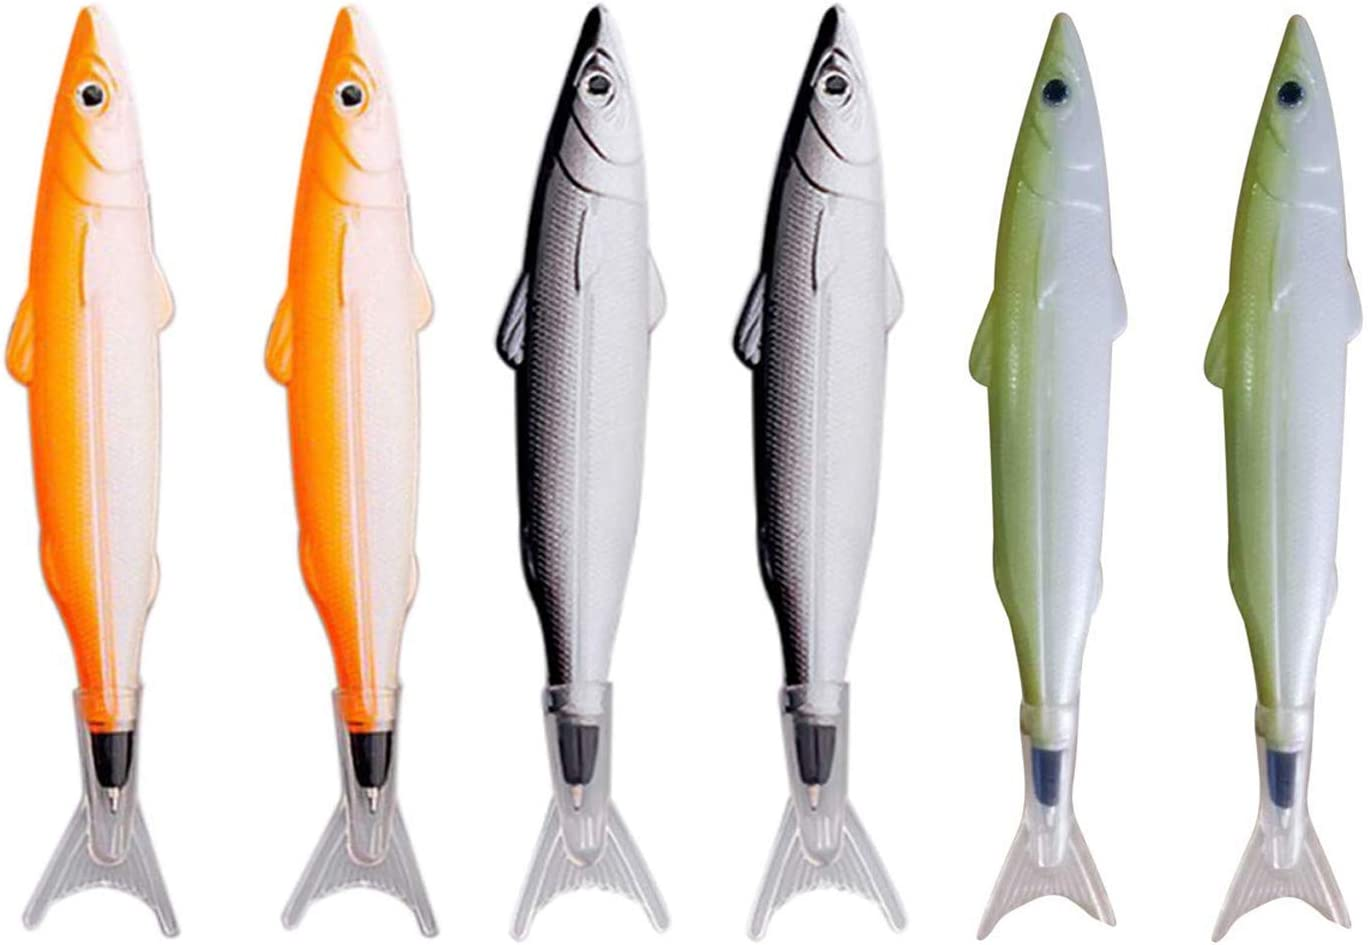 Maydahui 6PCS Fish Ballpoint Pen Creative Novelty Design Simulation Model Black ink Smooth Writting for School Kids Office Girls and Fishing Enthusiast